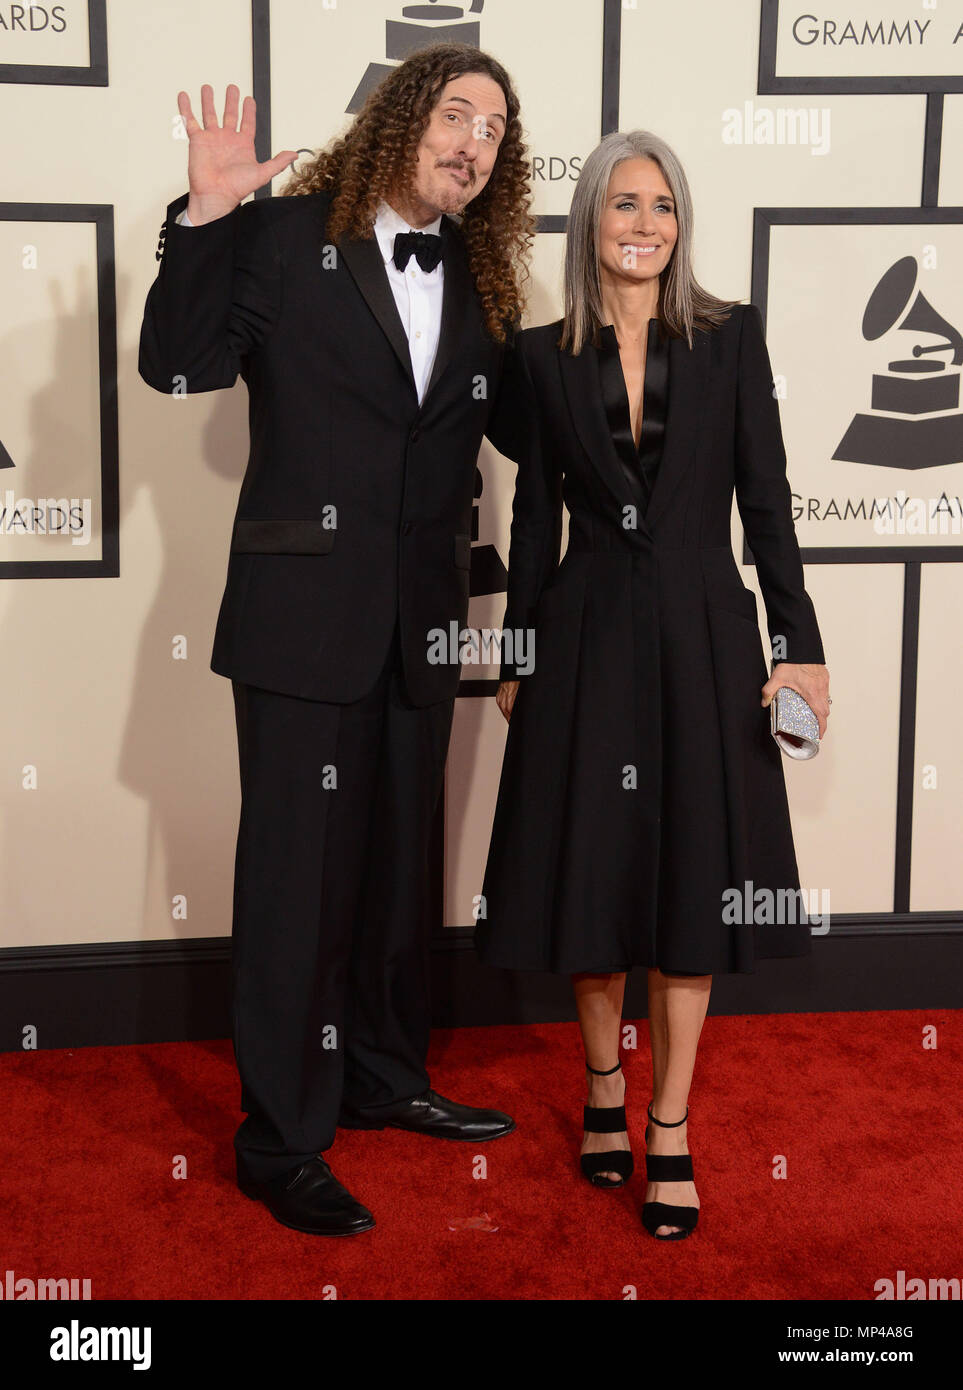 Weird Al Yankovic Suzanne Krajewski At The 57th Annual Grammy Awards At The Staples Center In Los Angeles February 8 2015 Weird Al Yankovic Suzanne Krajewski Red Carpet Event Vertical Usa Film